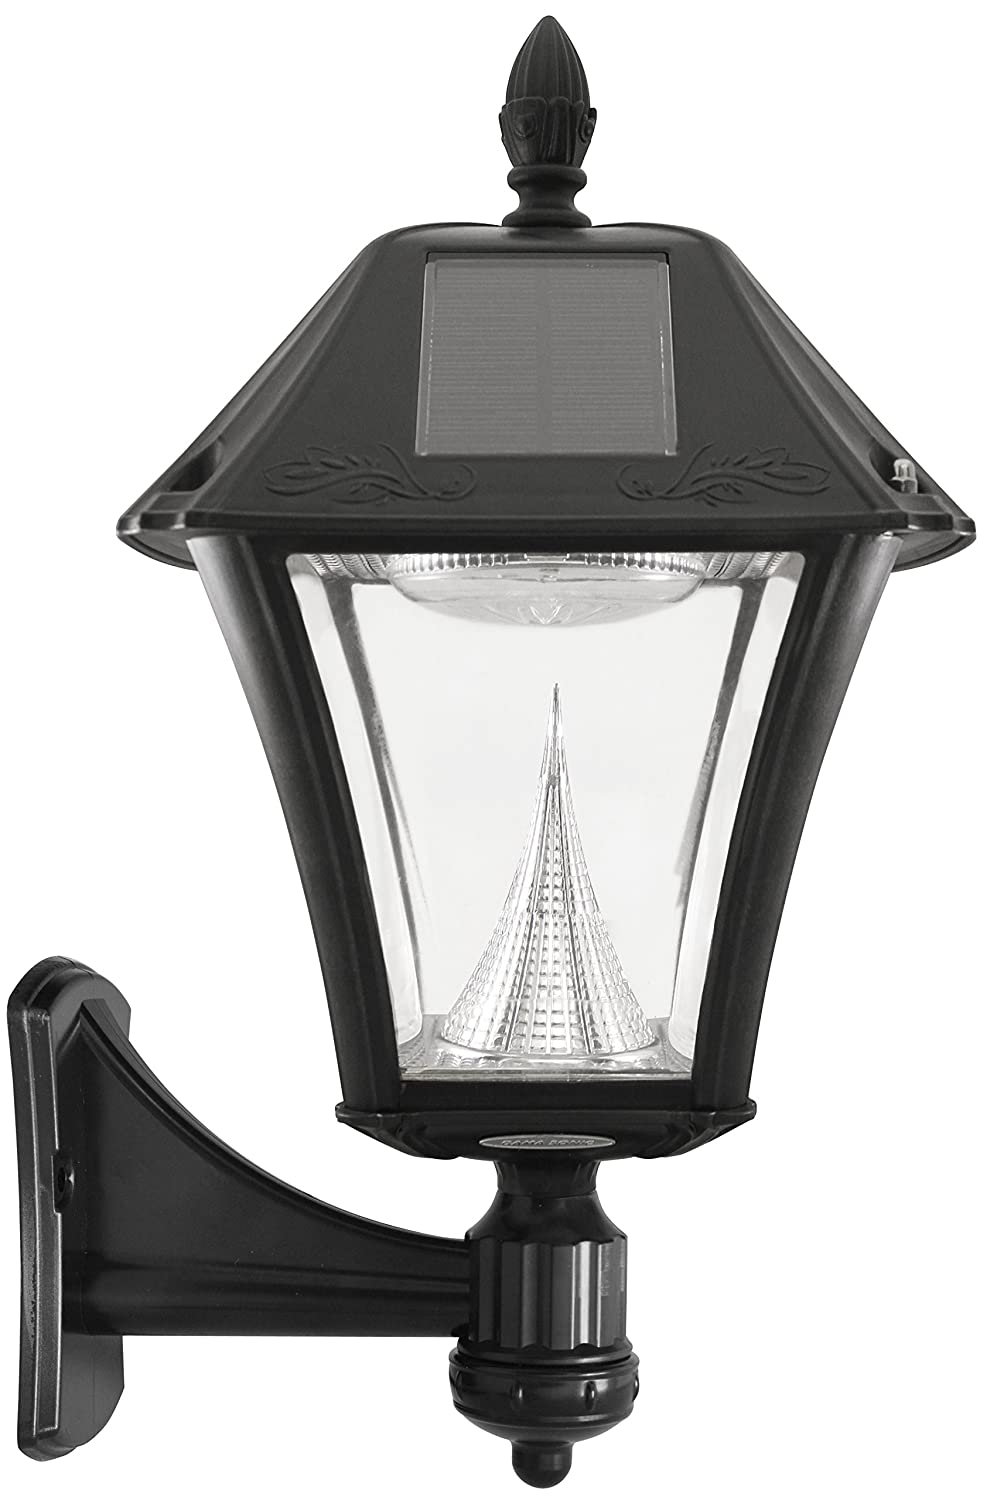 Gama Sonic Baytown Ii Solar Outdoor Lamp With Bright Underground Wiring To Light Post White Leds Pole Pier Wall Mount Kit Black Finish Garden